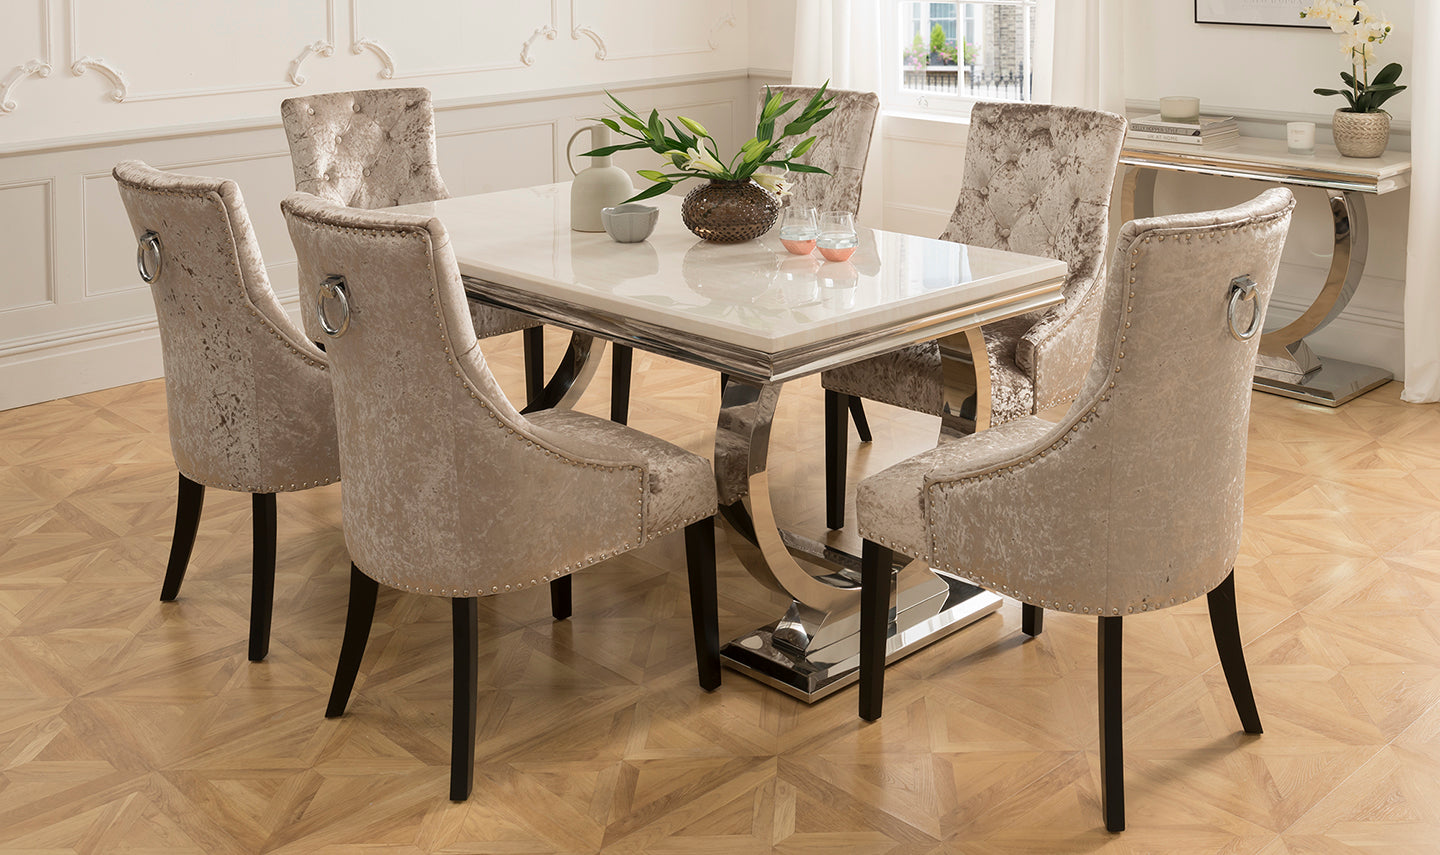 Arianna 180cm Cream Marble Dining Table 4 Ava Crushed Velvet Chairs